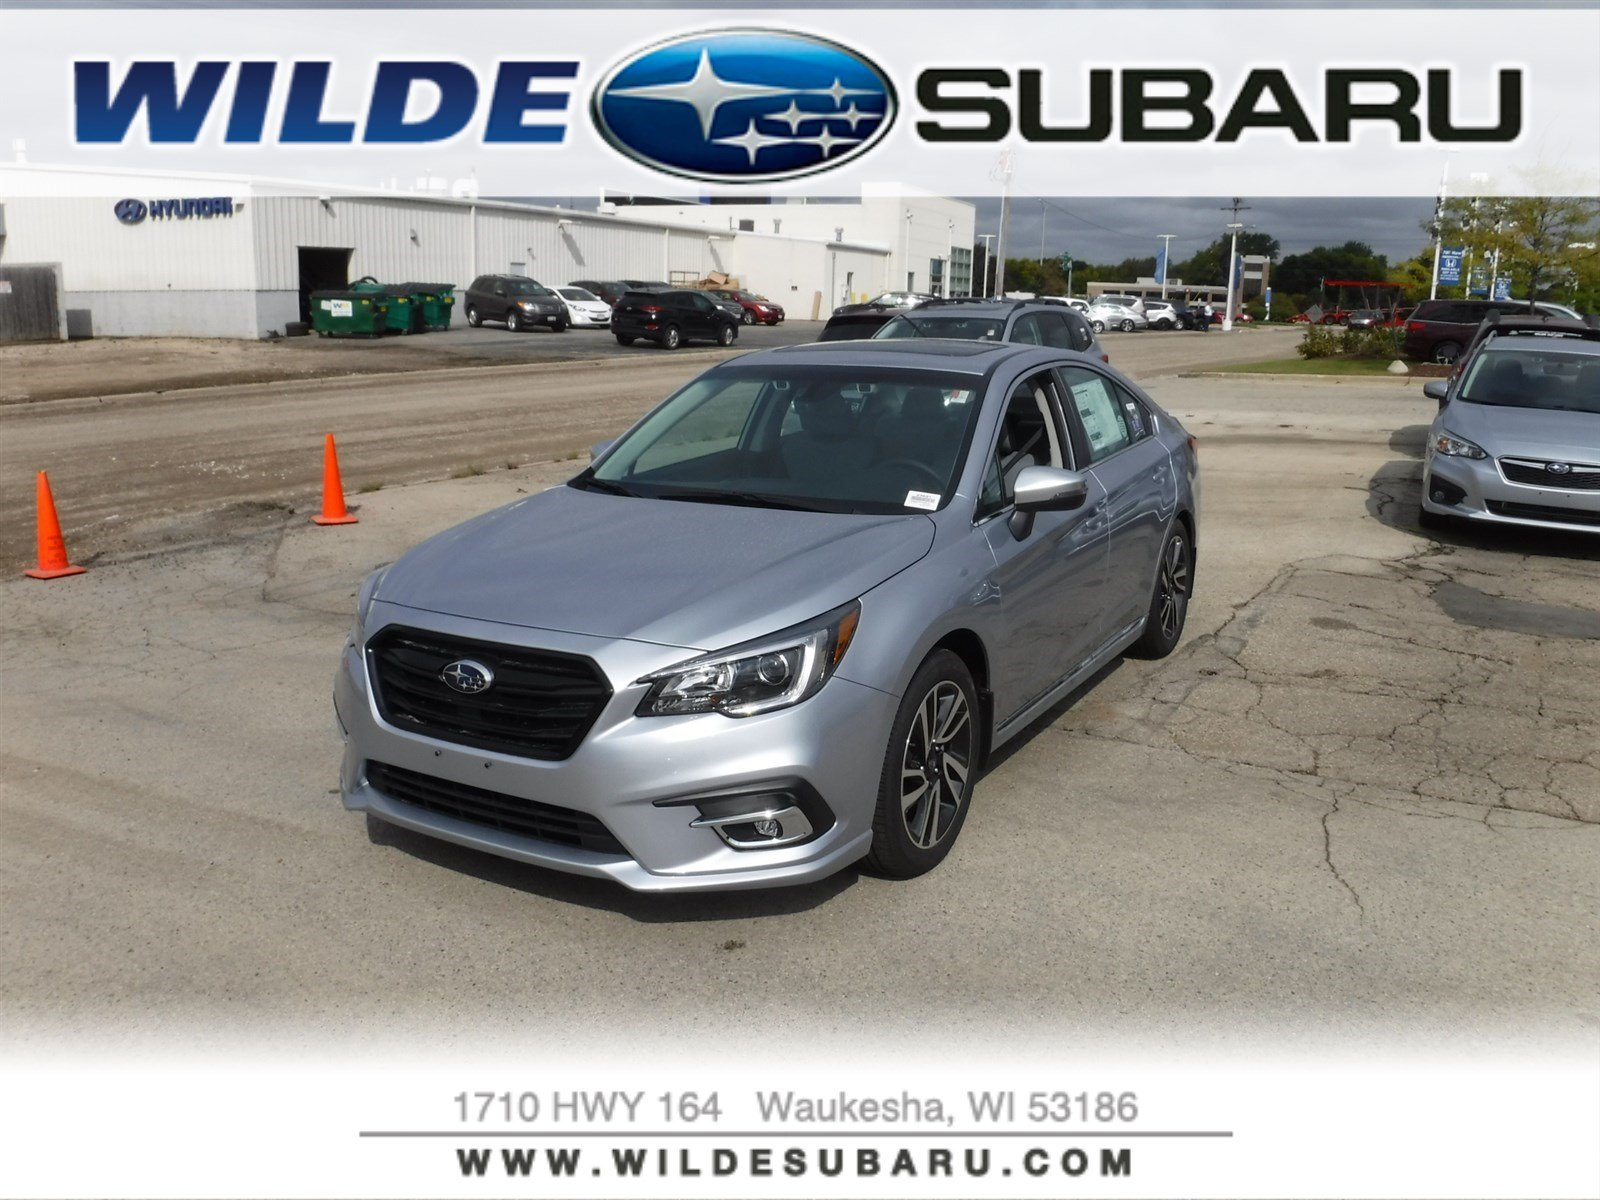 Subaru Legacy: Front passenger's seat (if equipped)